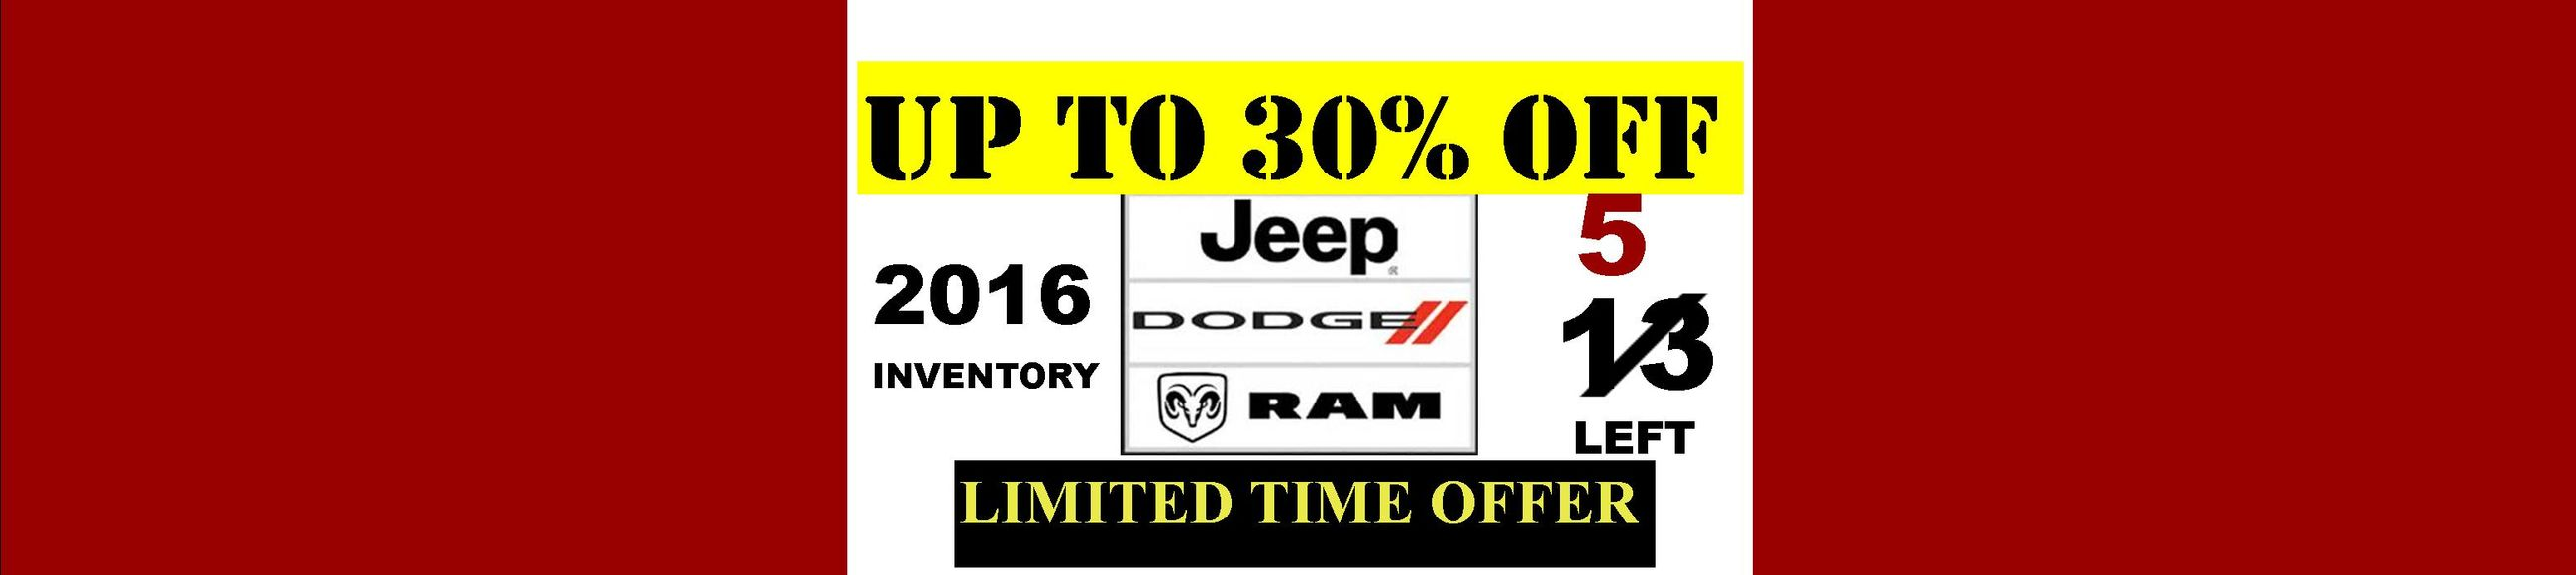 30% off 2016 Inventory